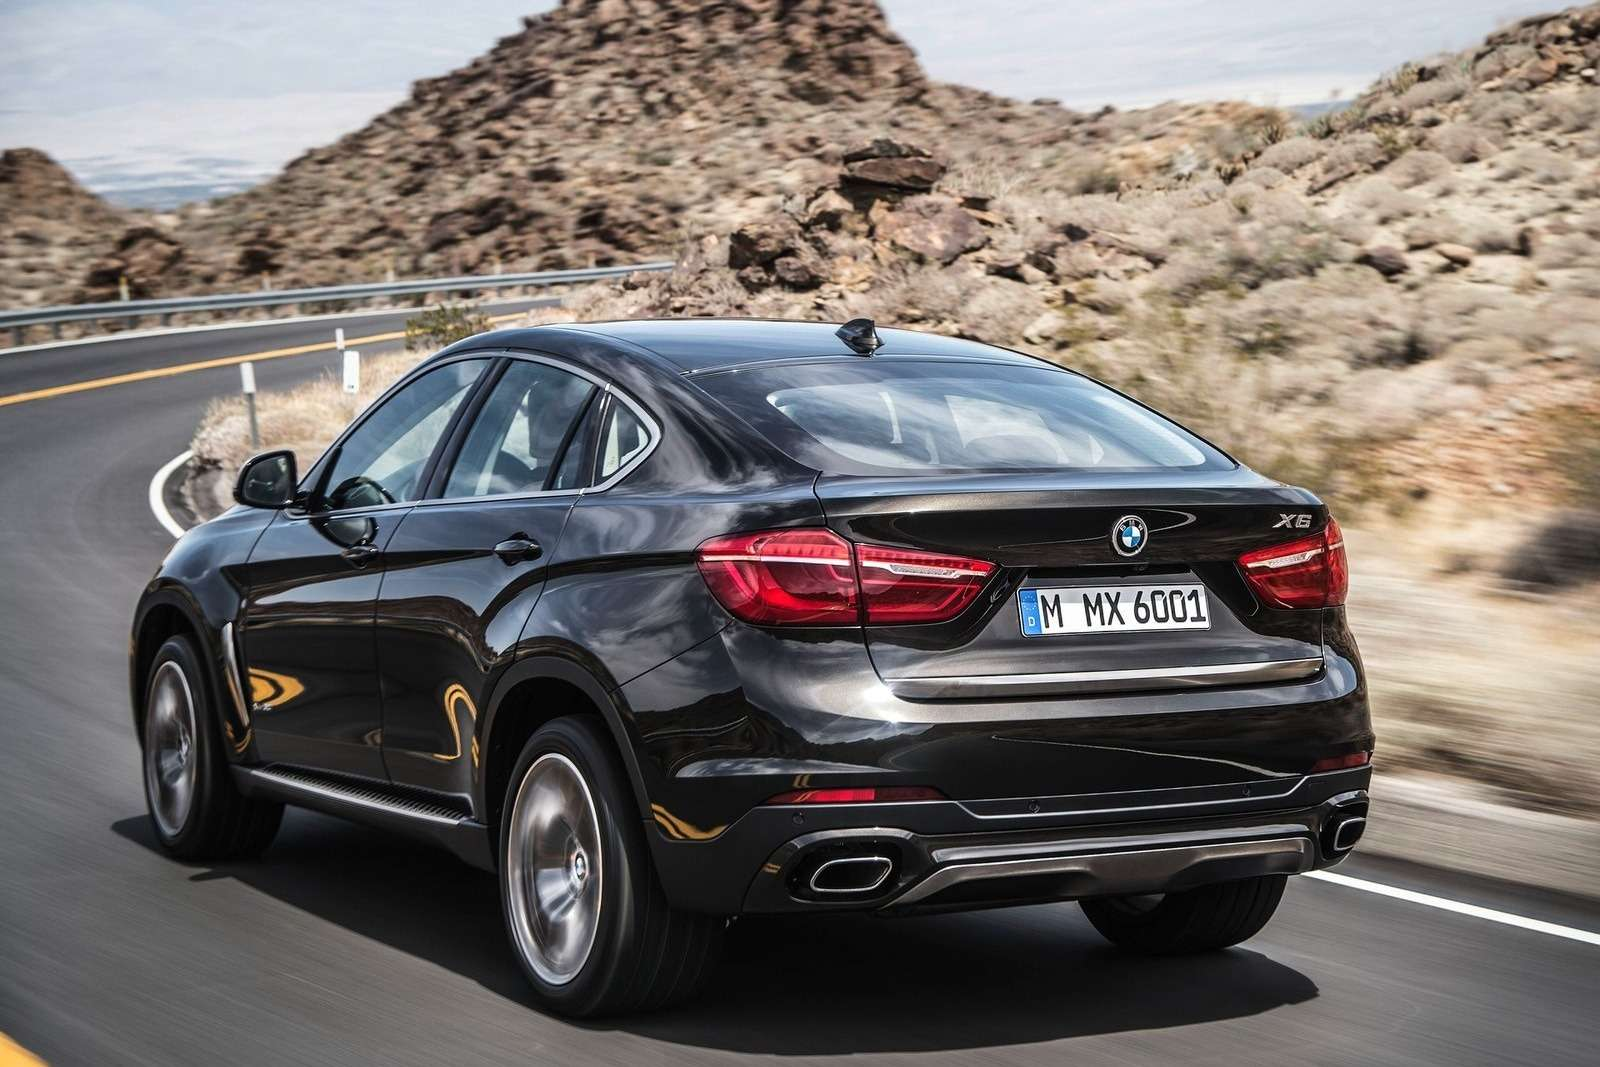 BMW-X6_2015_1600x1200_wallpaper_27